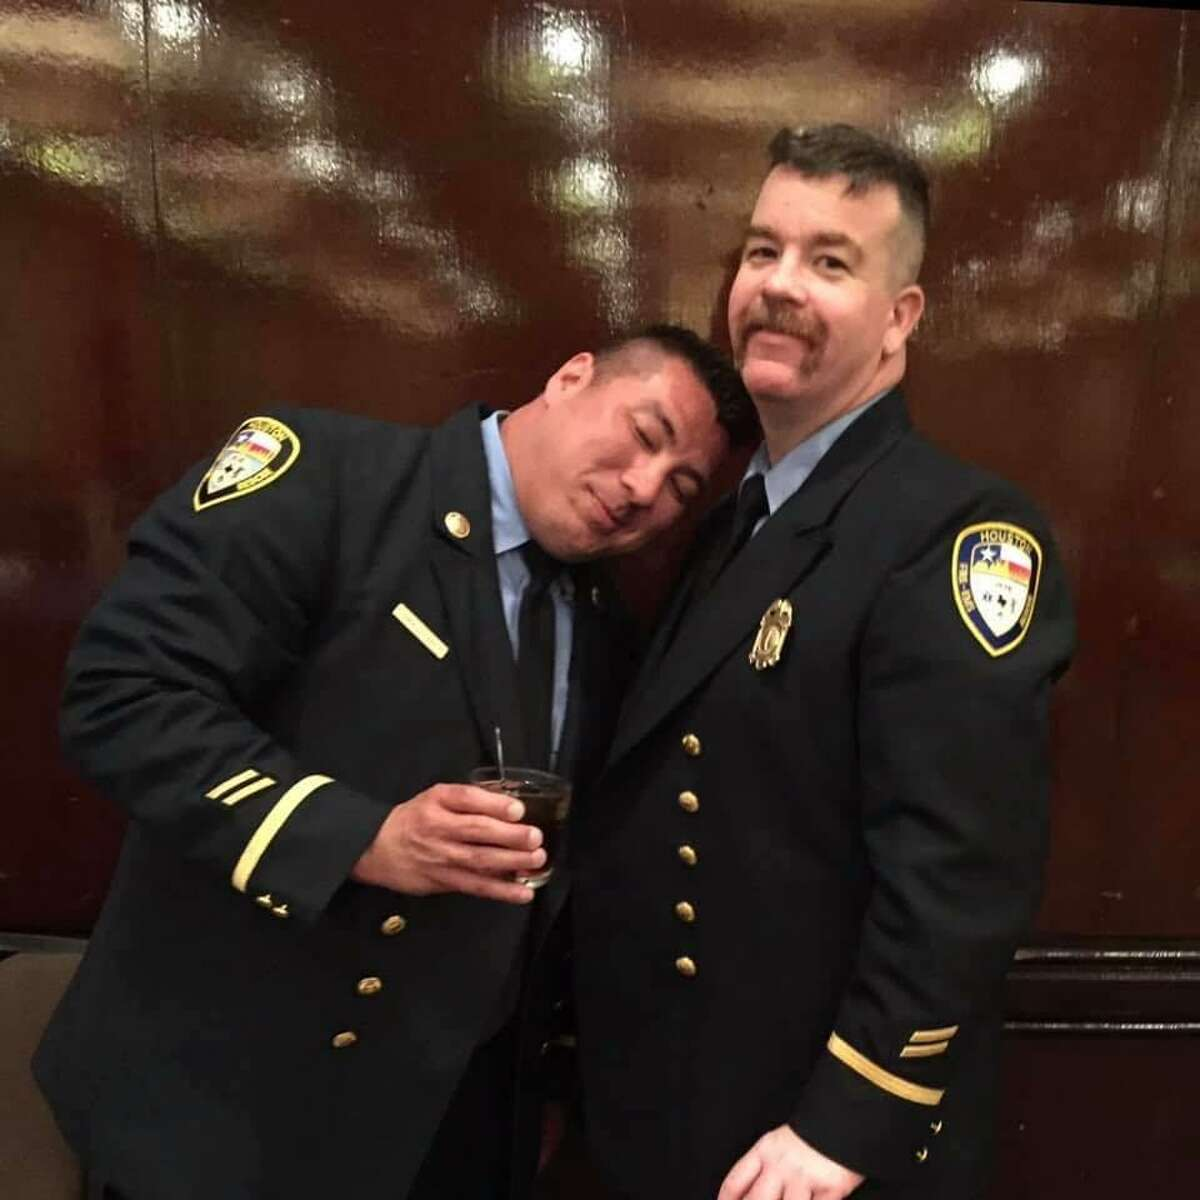 Houston Fire Department Capt. Tommy Searcy, 45, died Sept. 8 after a roughly month-long battle with COVID-19. The third Houston firefighter to die from the virus, Searcy's colleagues remembered him for his calm leadership style and friendly demeanor in the station.